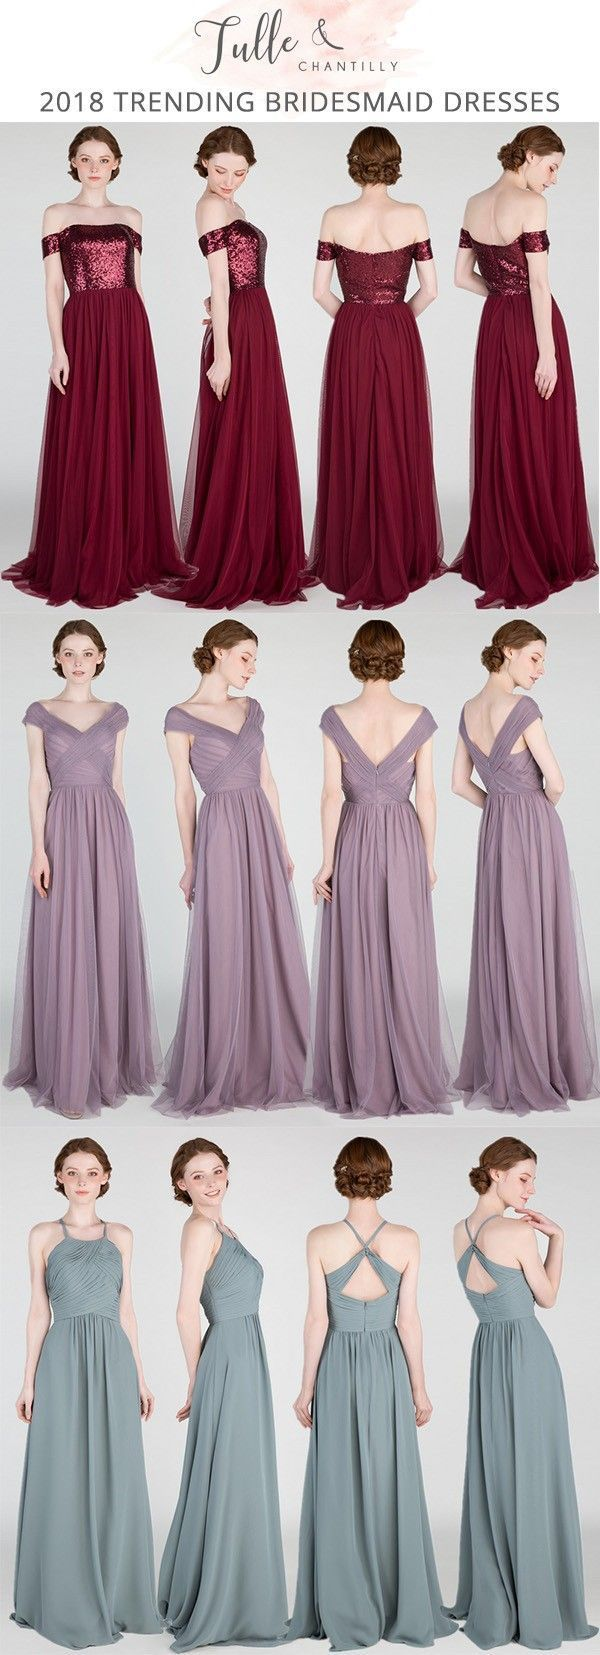 76906ebdbf4 2018 trending bridesmaid dresses from tulle and chantilly  bridalparty   wedding  bridesmaiddresses